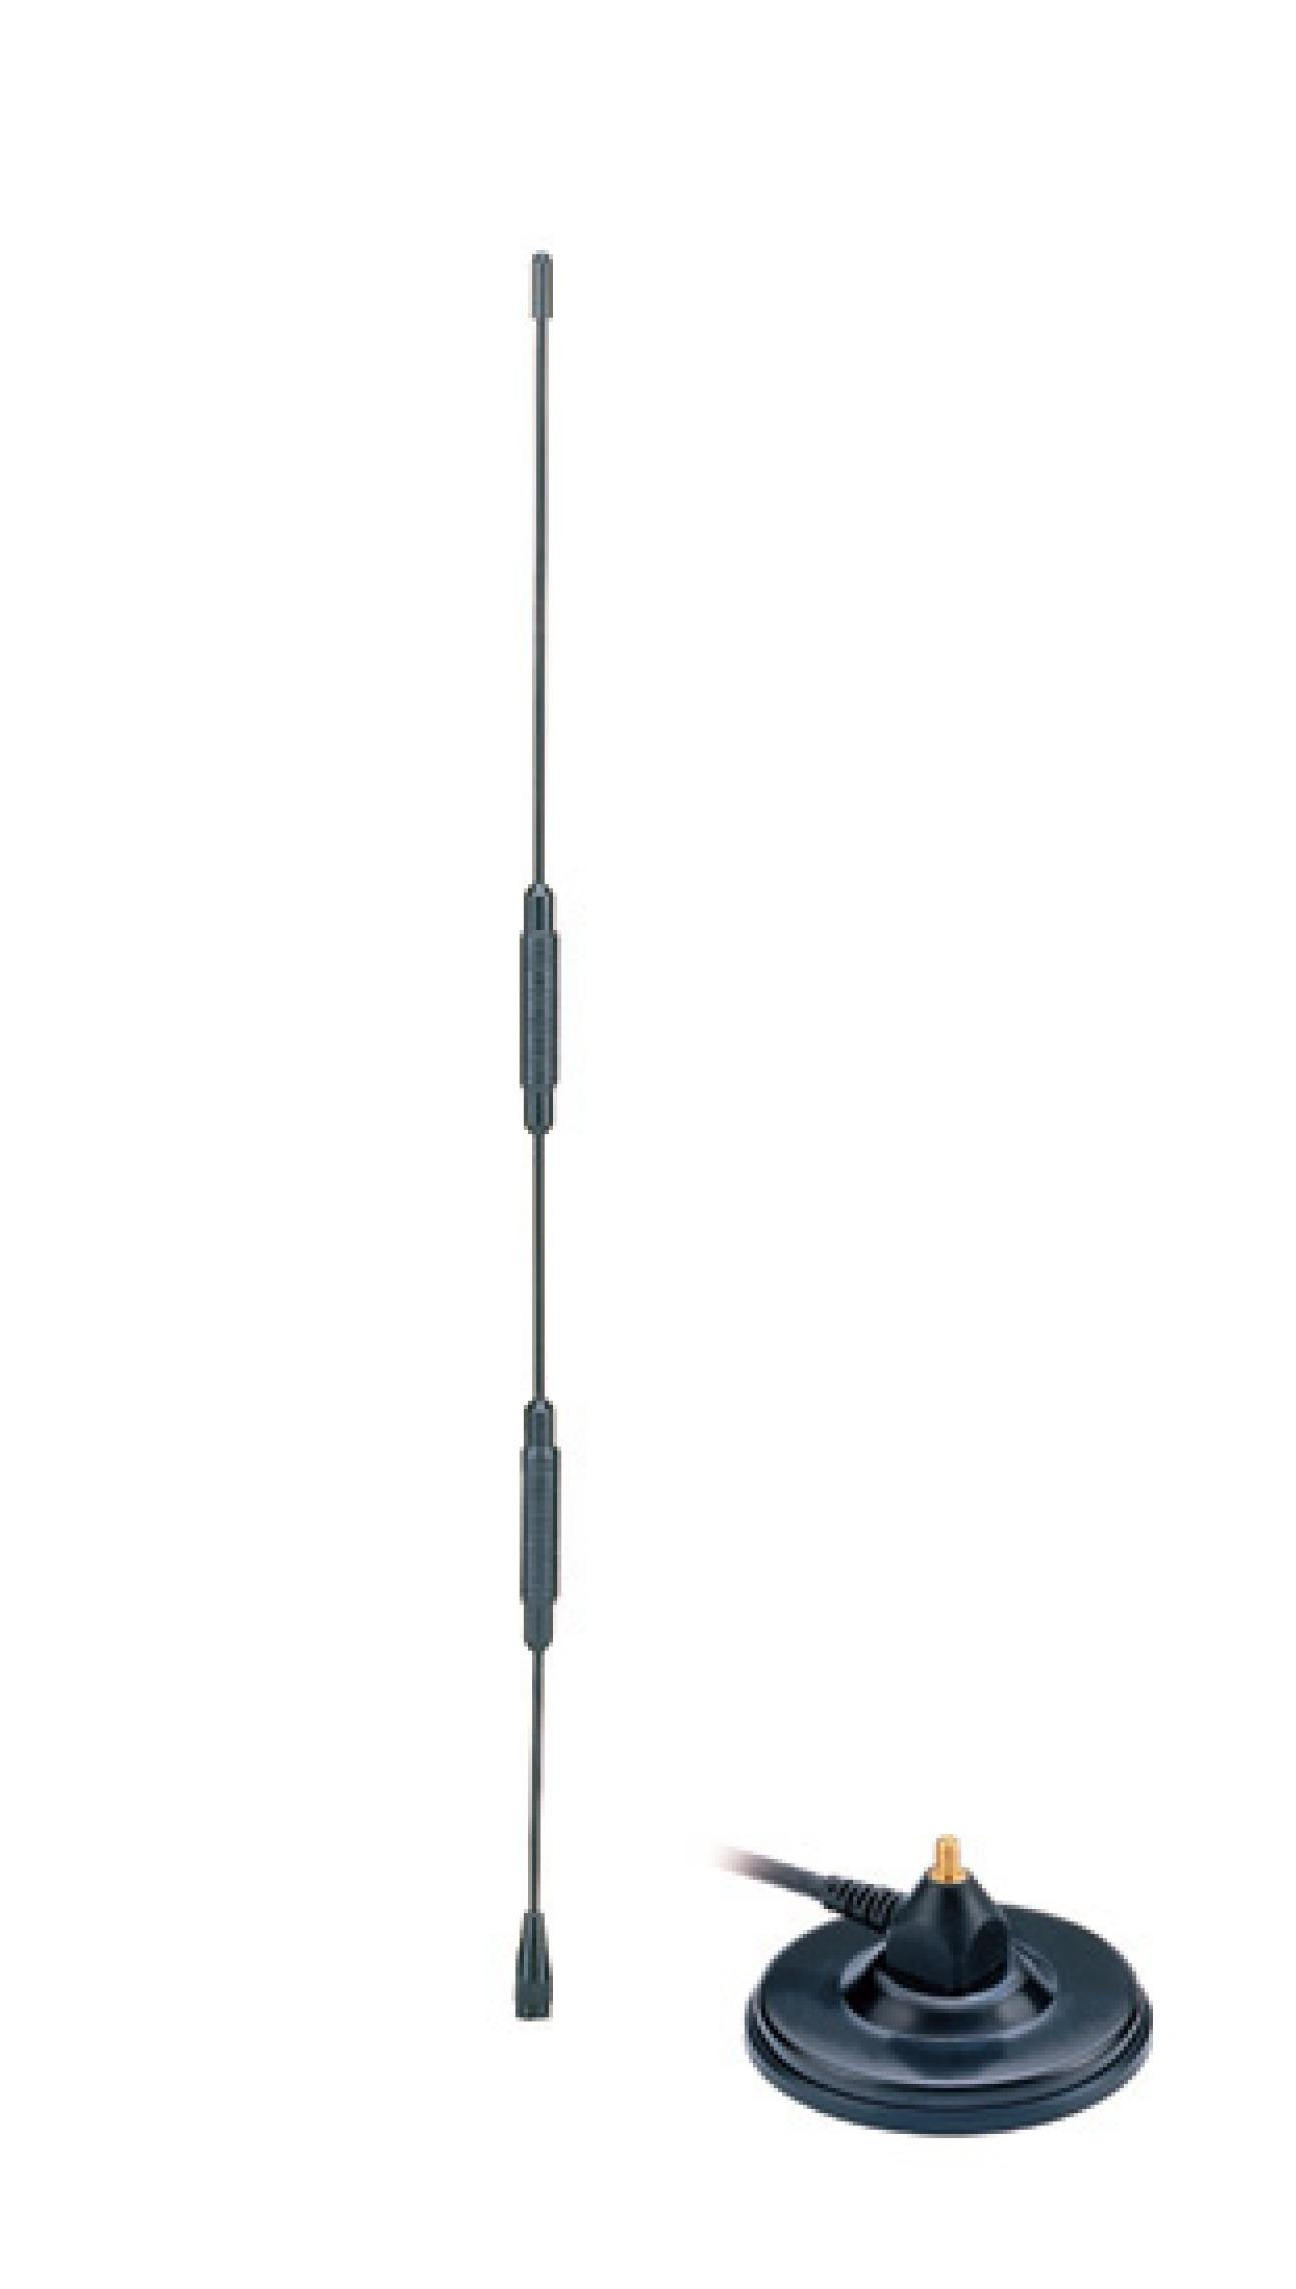 Car Antenna, 3G Antenna, Magnetic Mount Antenna, External Antenna, Whip Antenna, RF Antenna, Vehicle Antenna